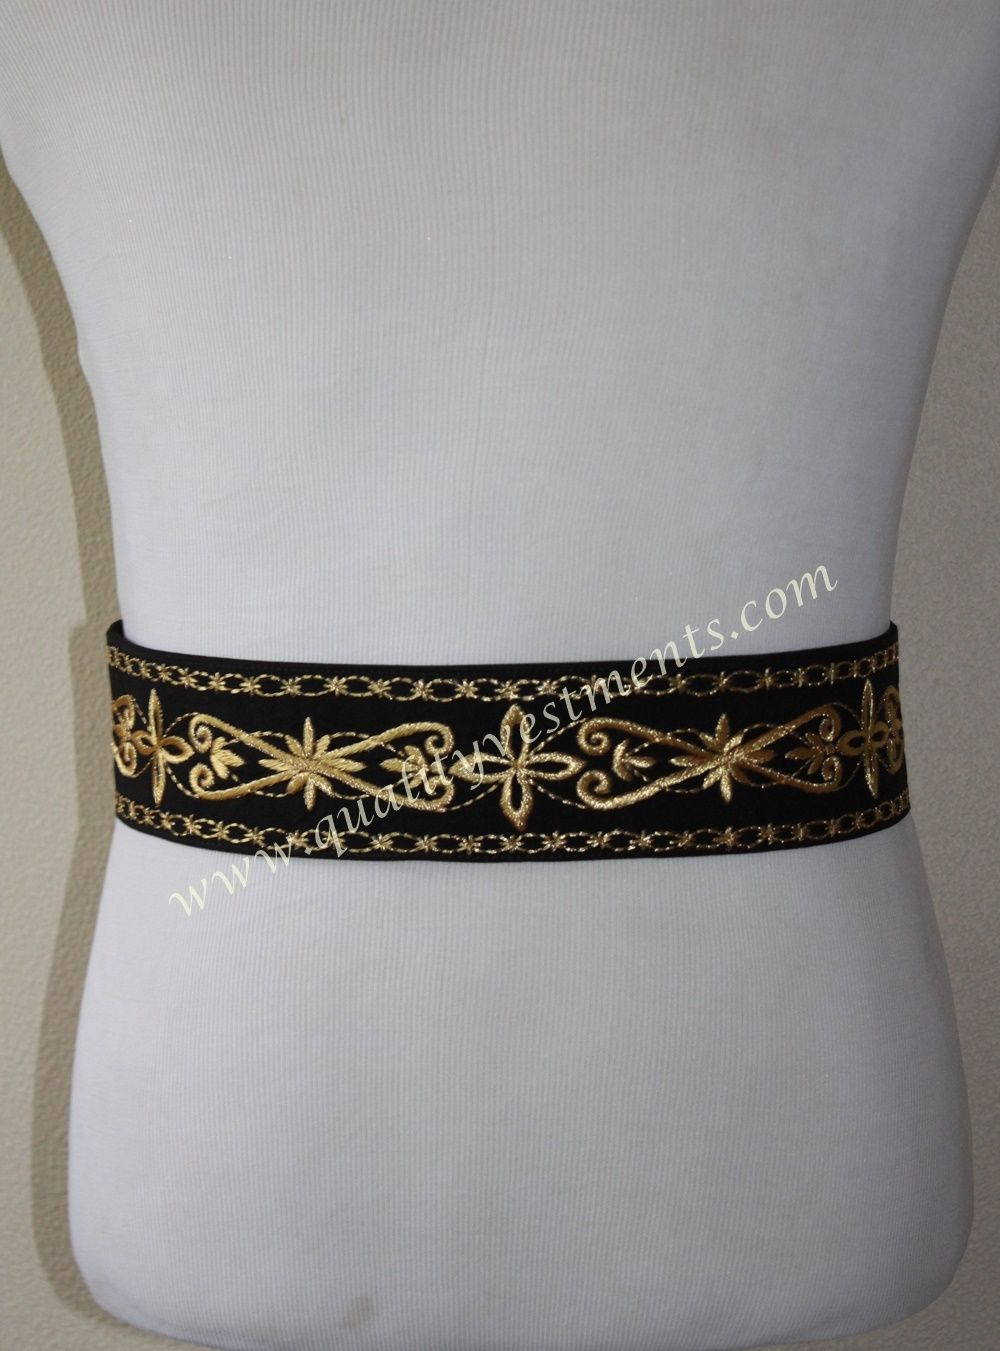 TO ORDER!! Church Liturgical Embroidered Priest Clergy Belt